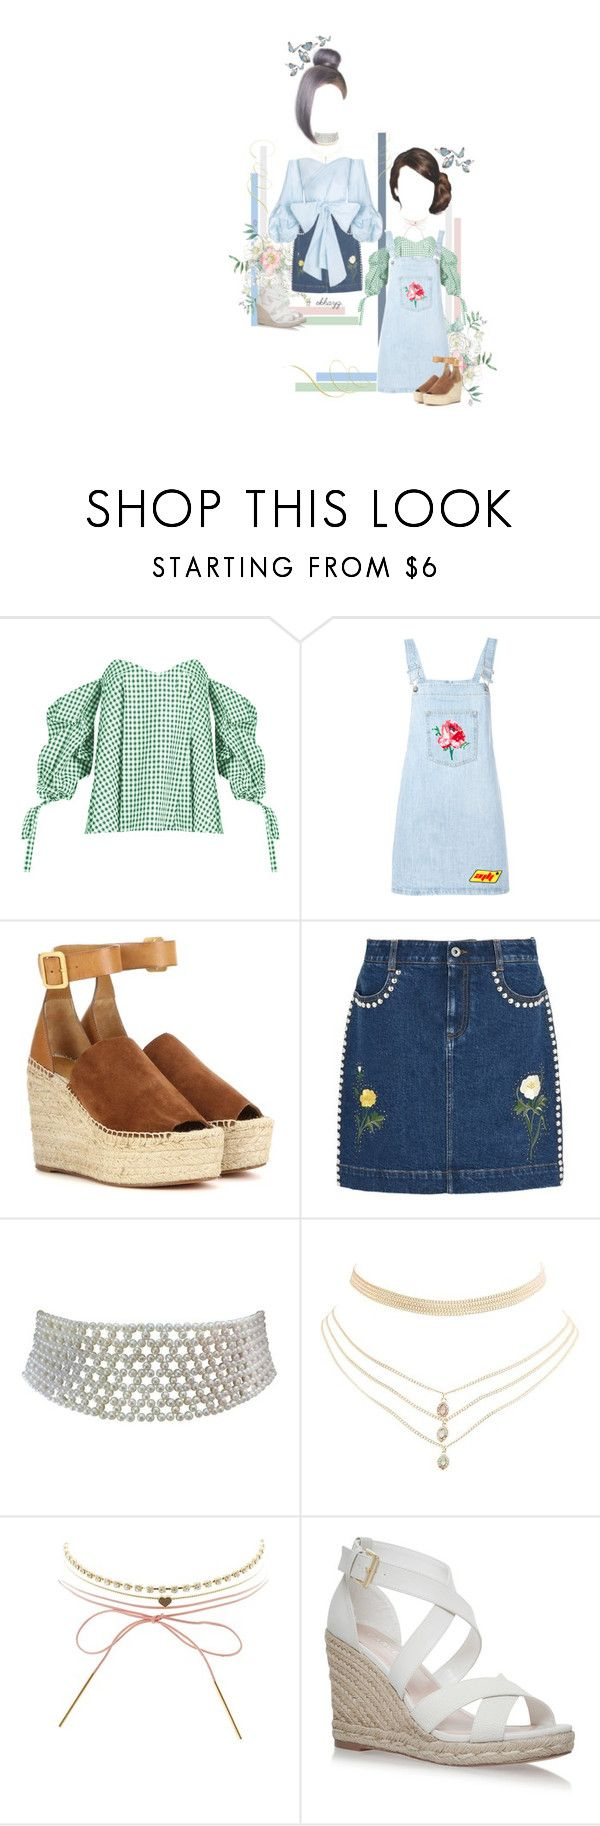 """spring forward, fall back."" by ekhayz ❤ liked on Polyvore featuring Caroline Constas, Au Jour Le Jour, Chloé, STELLA McCARTNEY, Marina J., Charlotte Russe, ootd, StellaMcCartney, aujourlejour and carolineconstas"